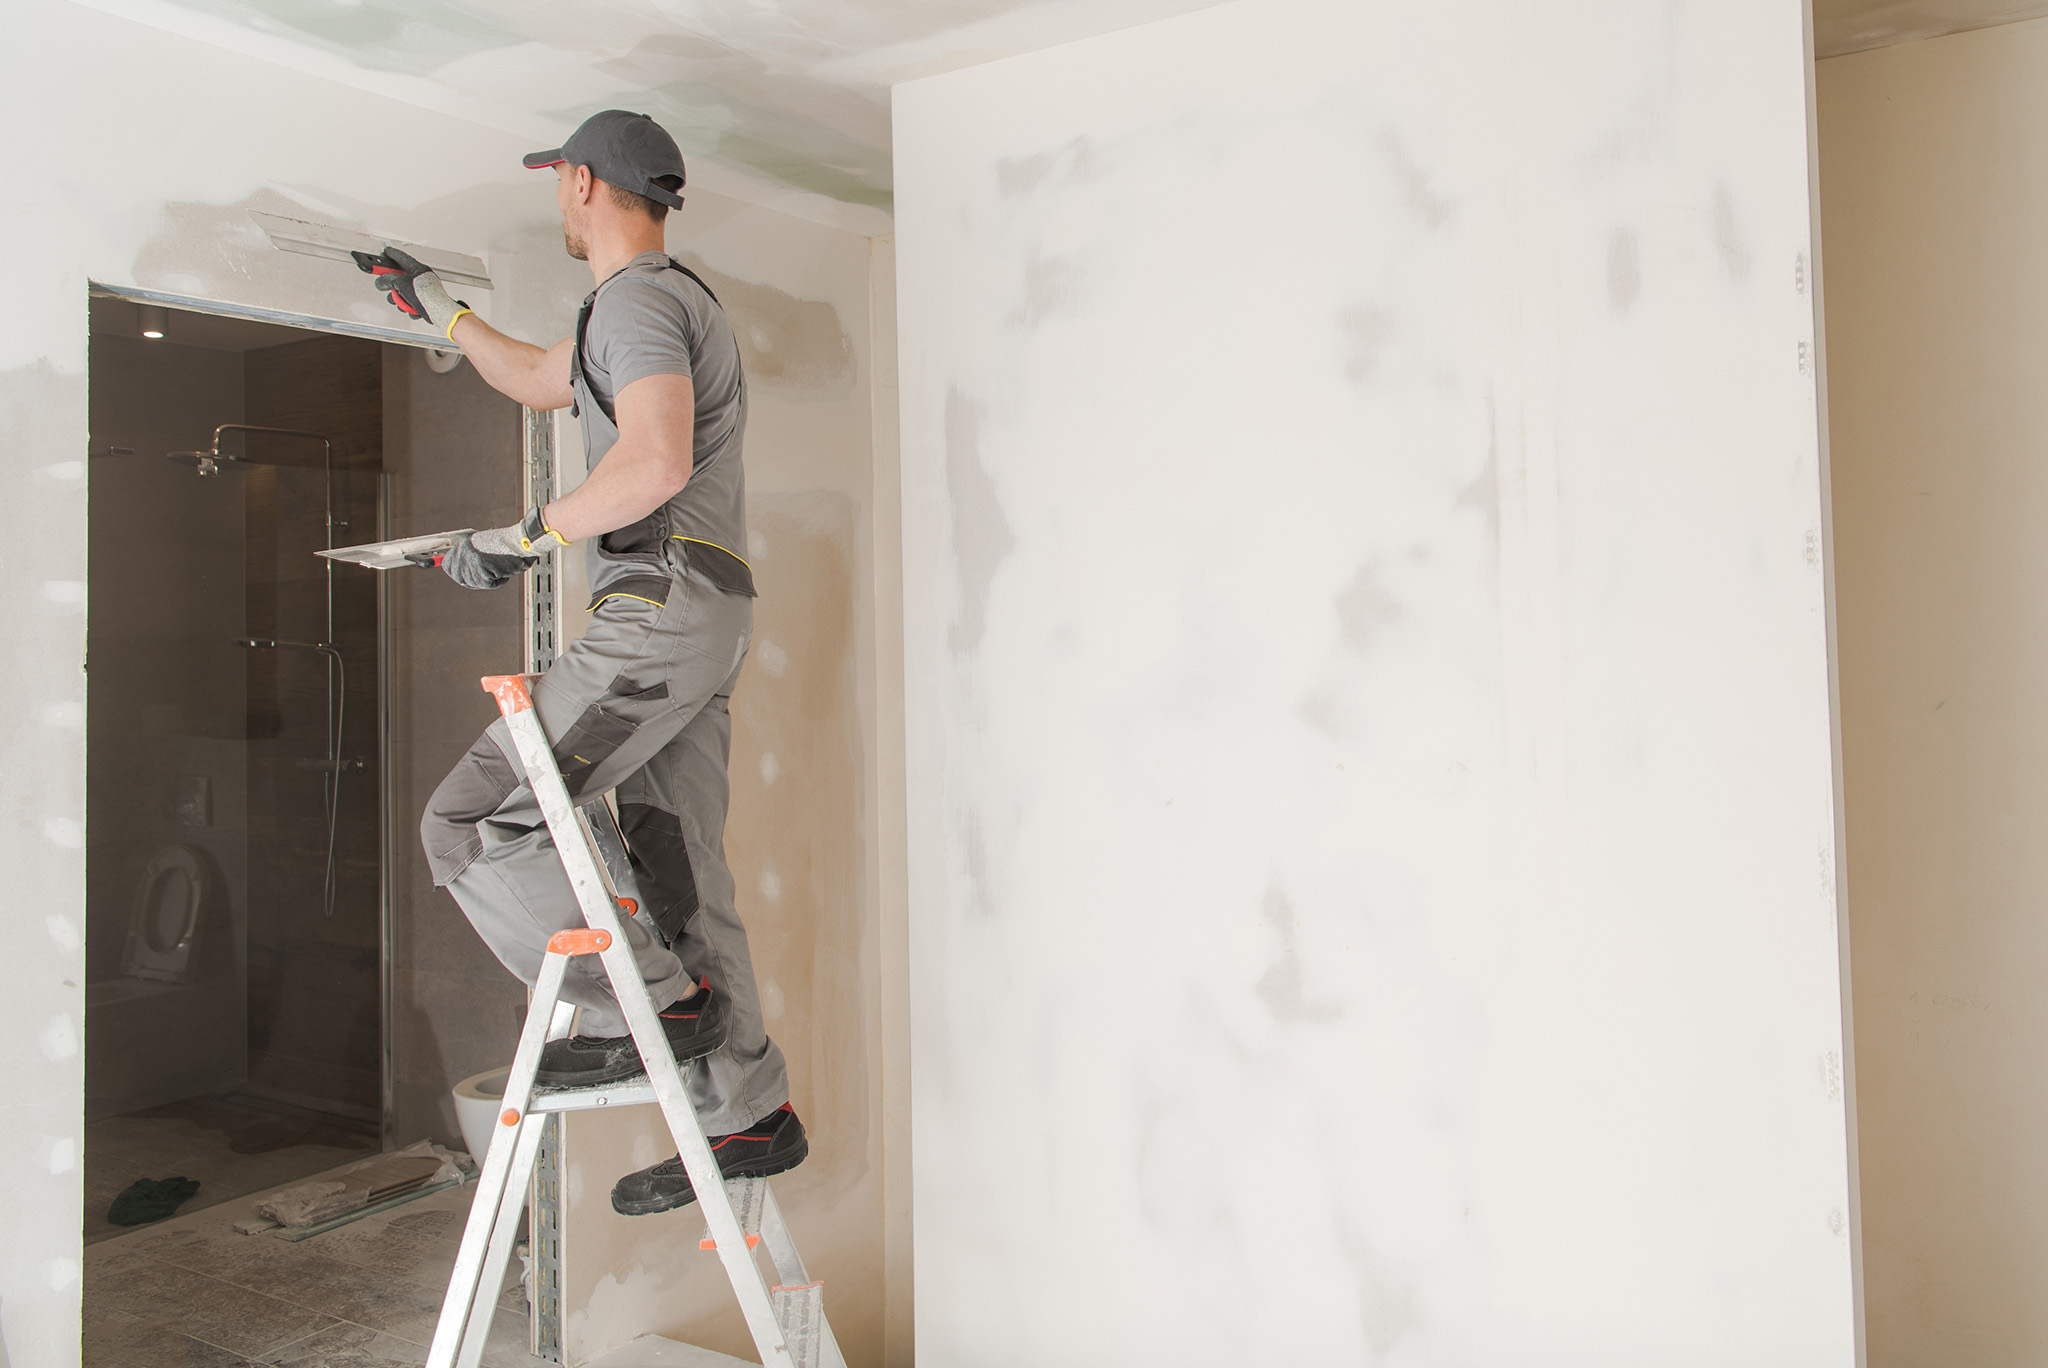 Drywall Dilemmas